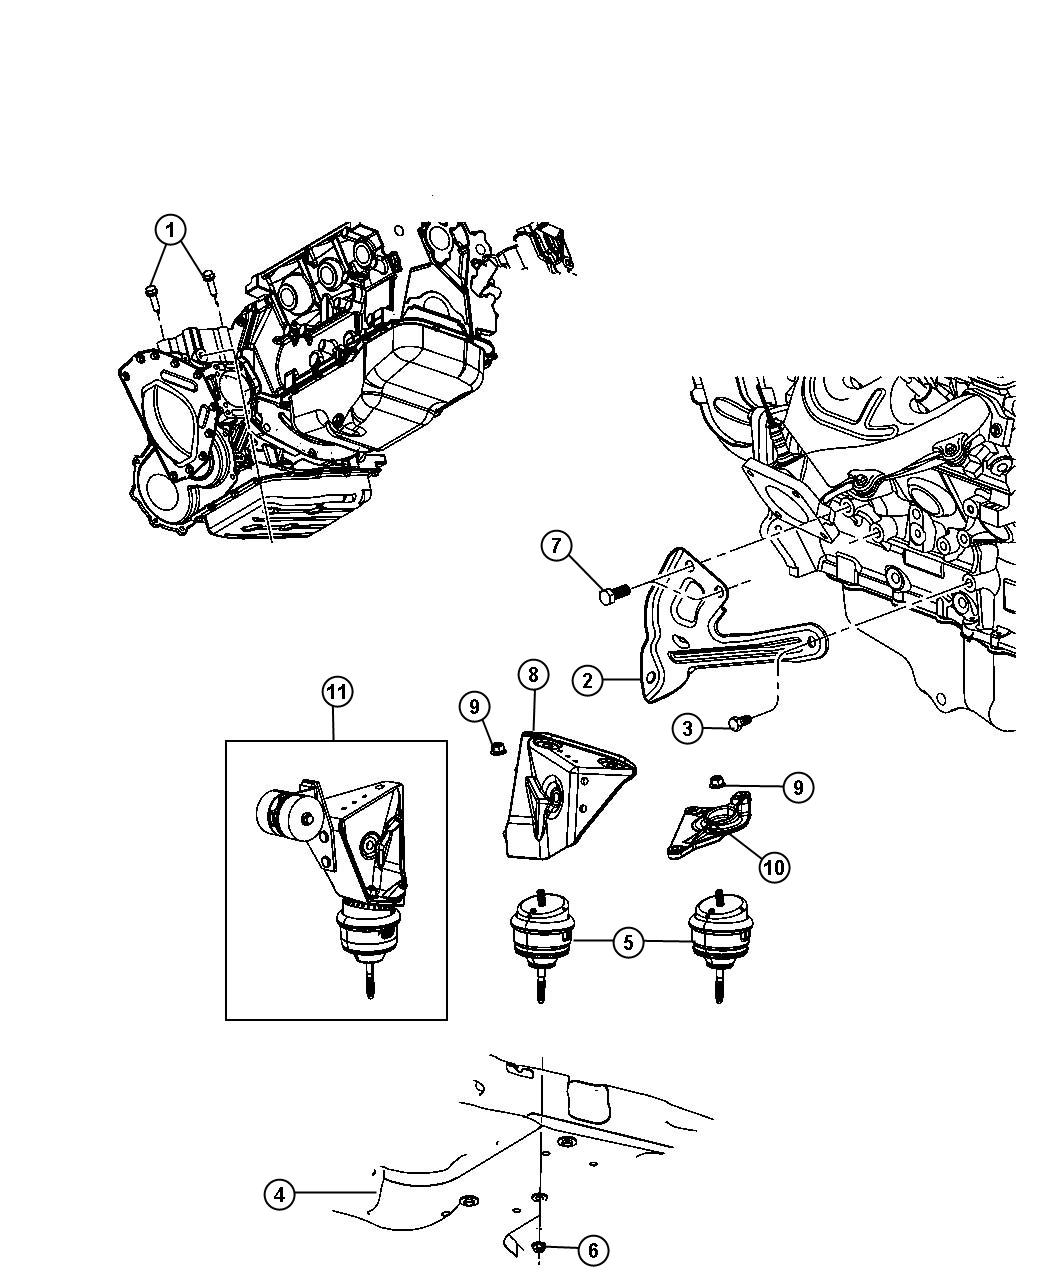 2007 pacifica motor mount diagram